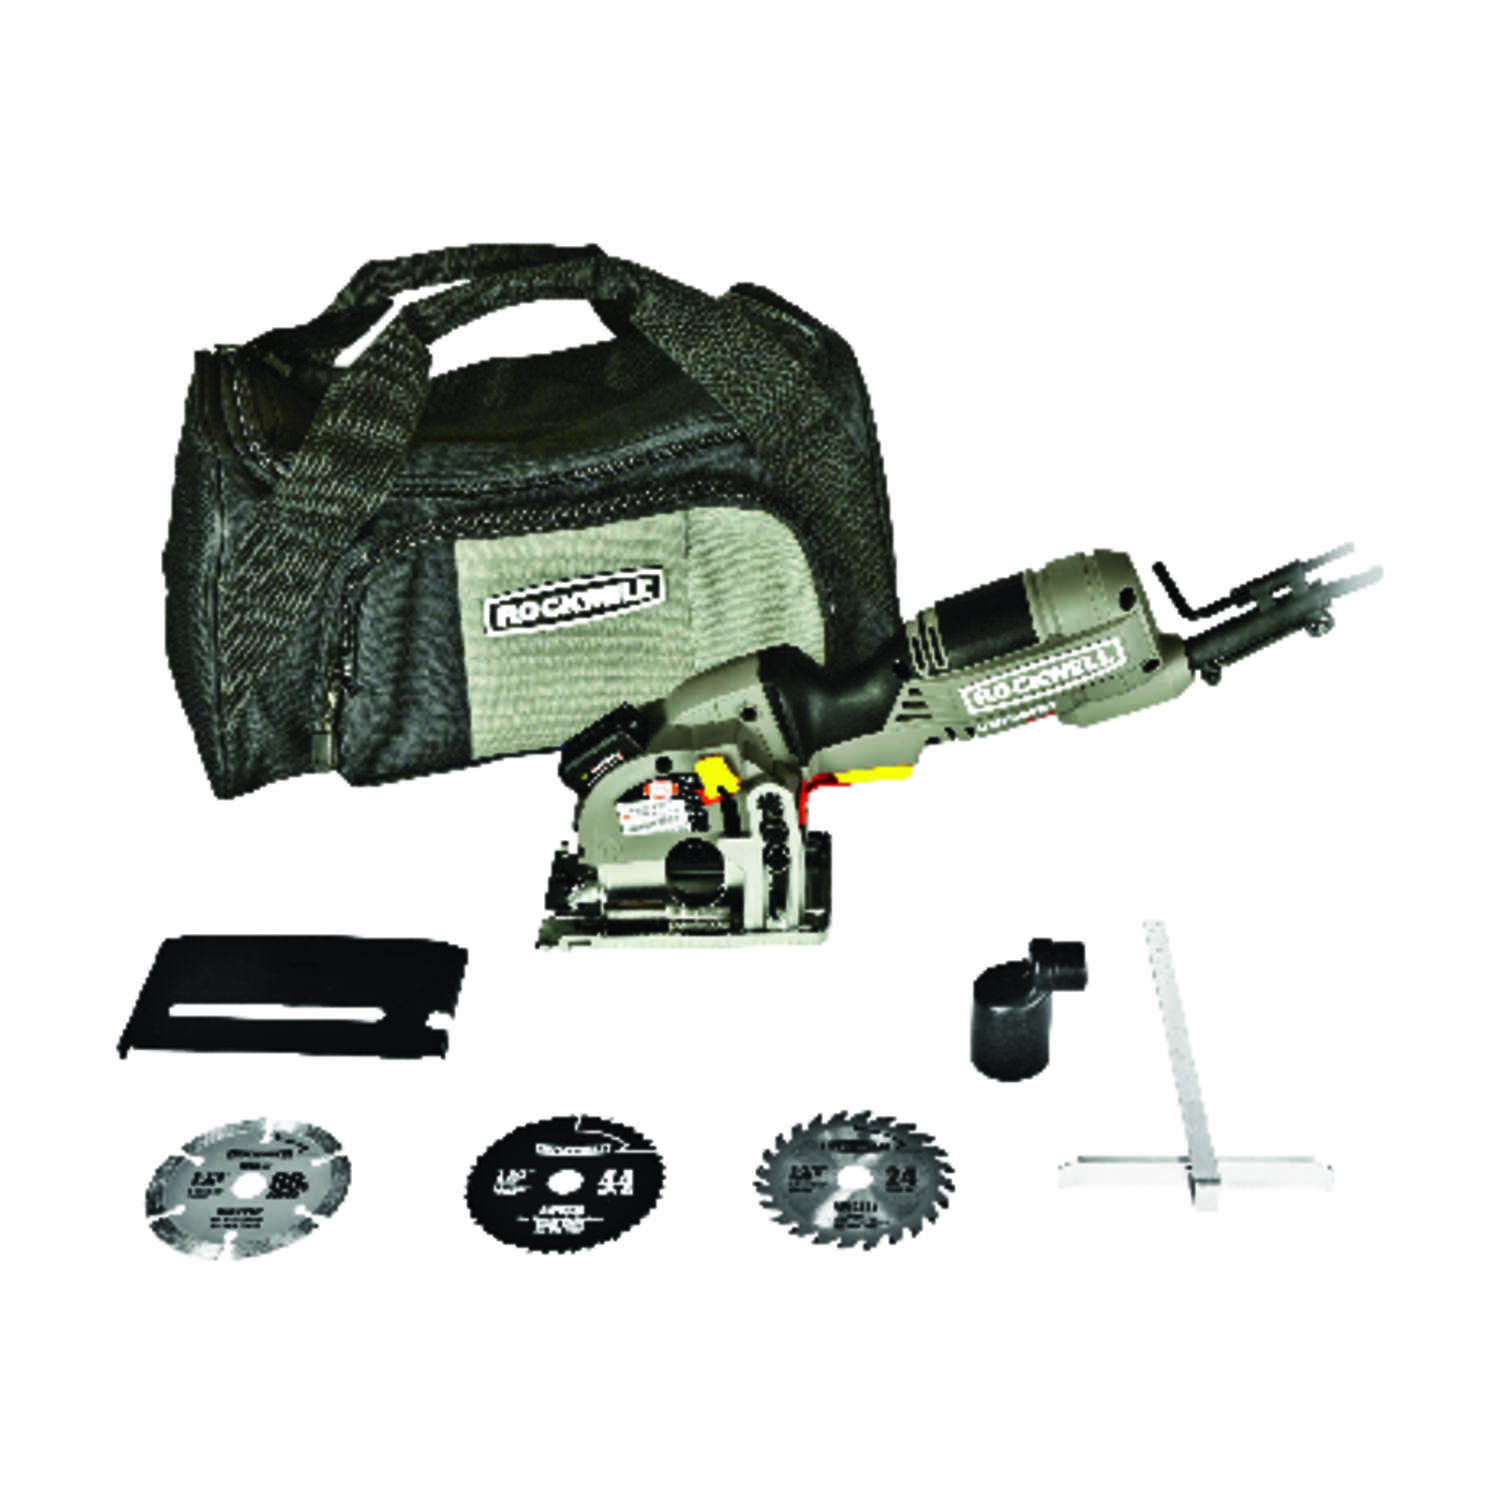 Rockwell  Versacut Mini  120 volts 4 amps 3-3/8 in. in. 3500 rpm Circular Saw